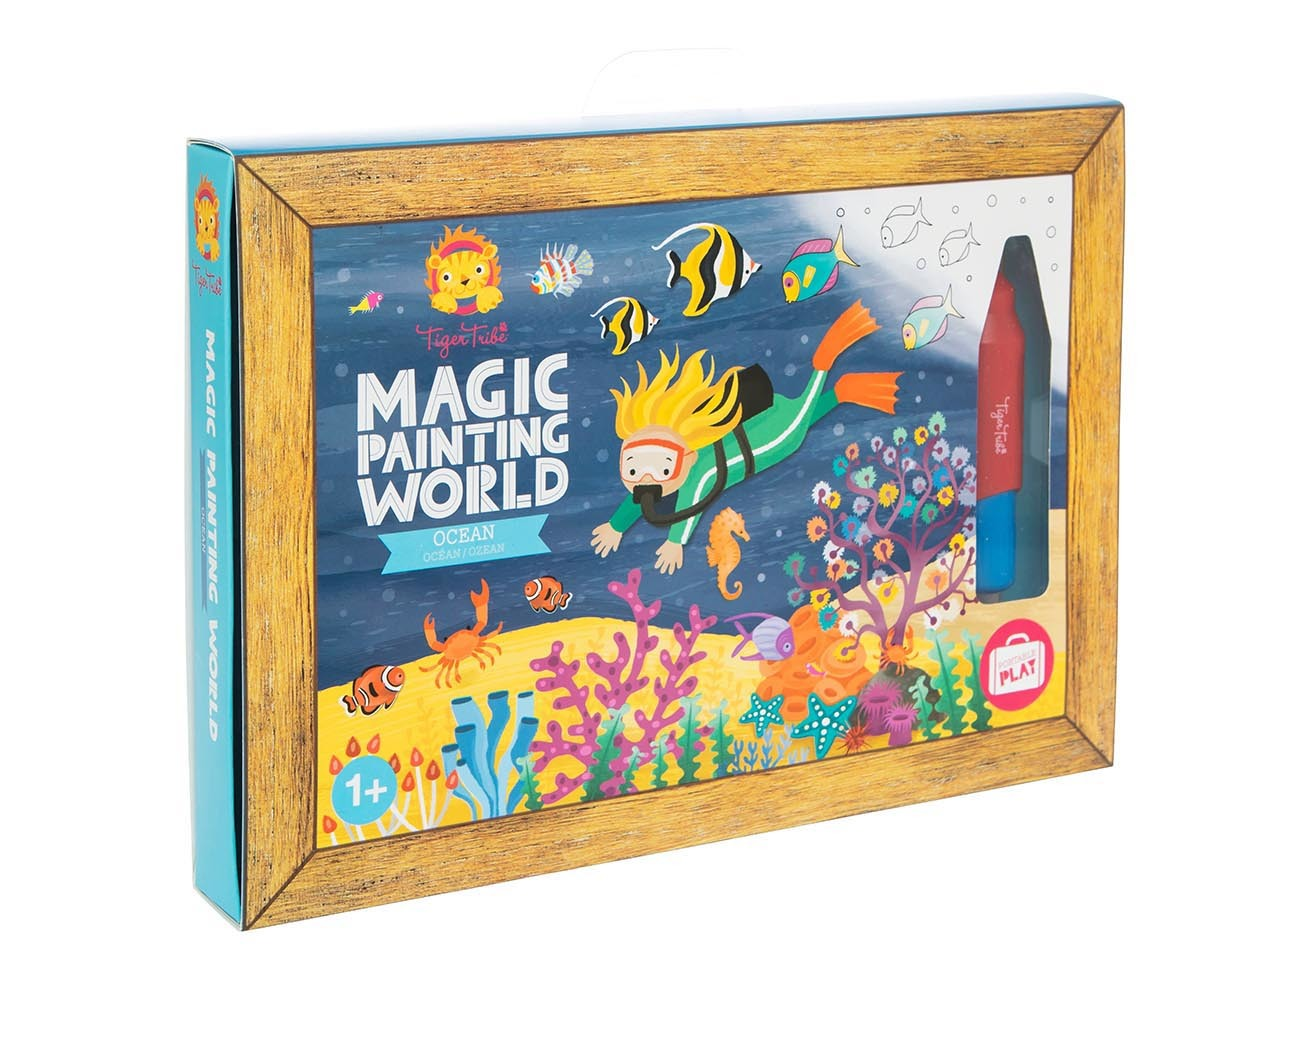 Tiger Tribe Magic Painting World Ocean available at Little Sprout